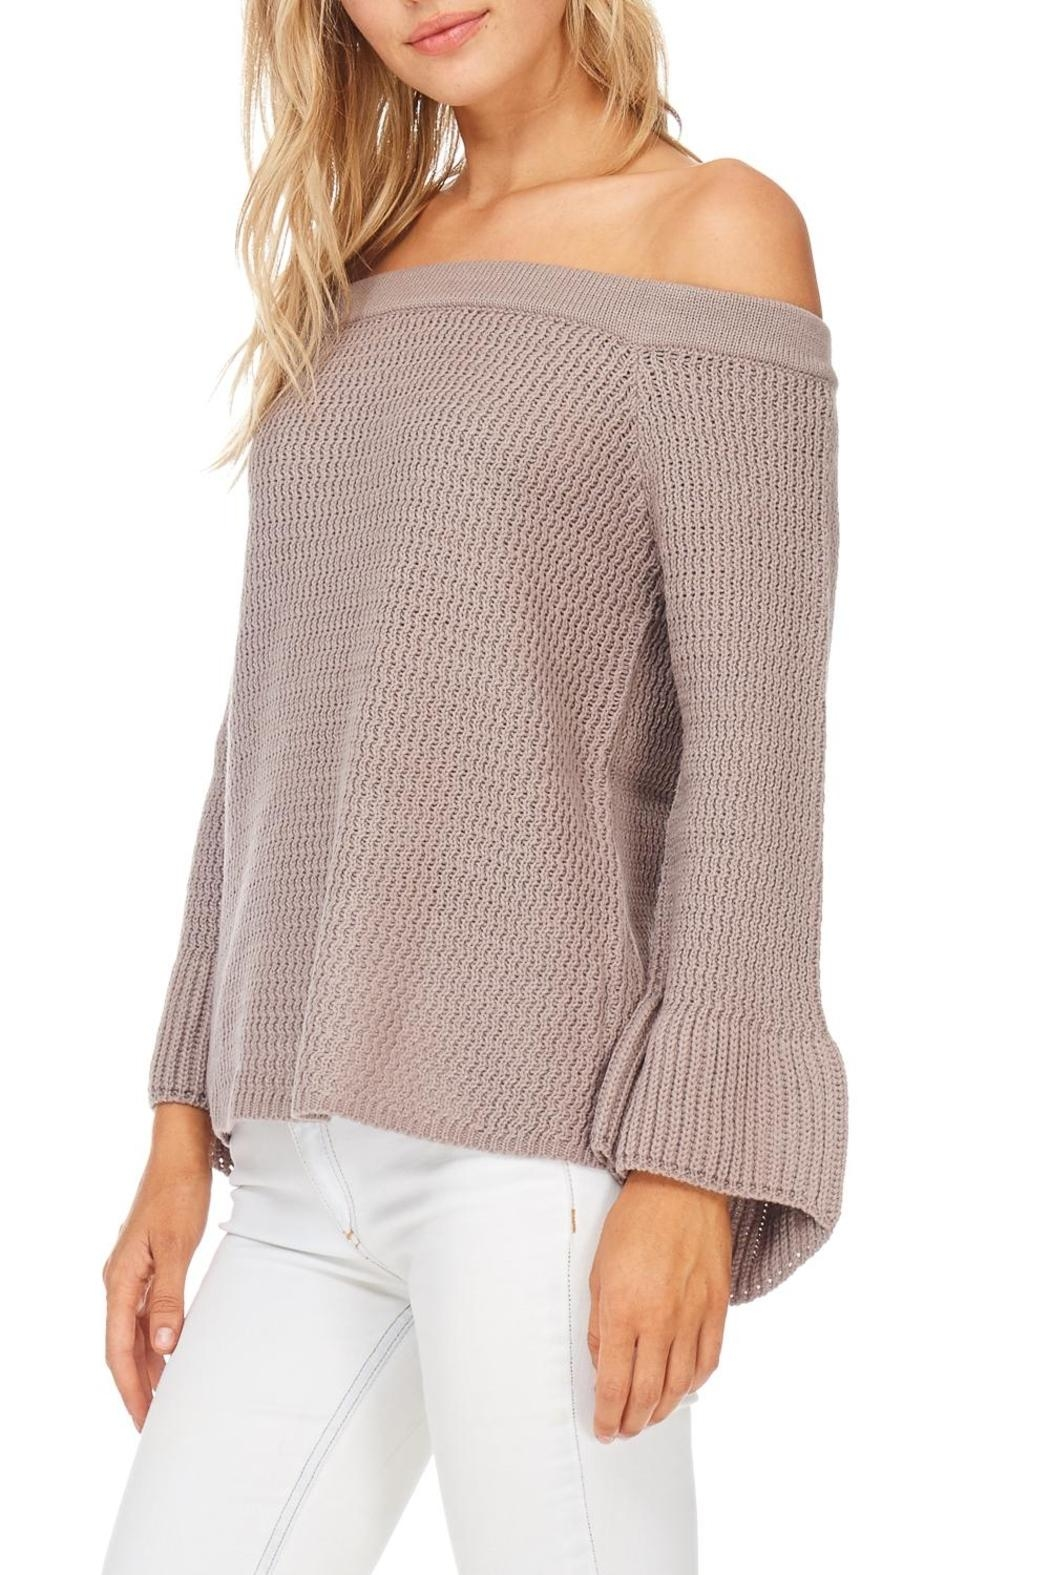 LoveRiche Mocha Off Shoulder Sweater - Front Full Image